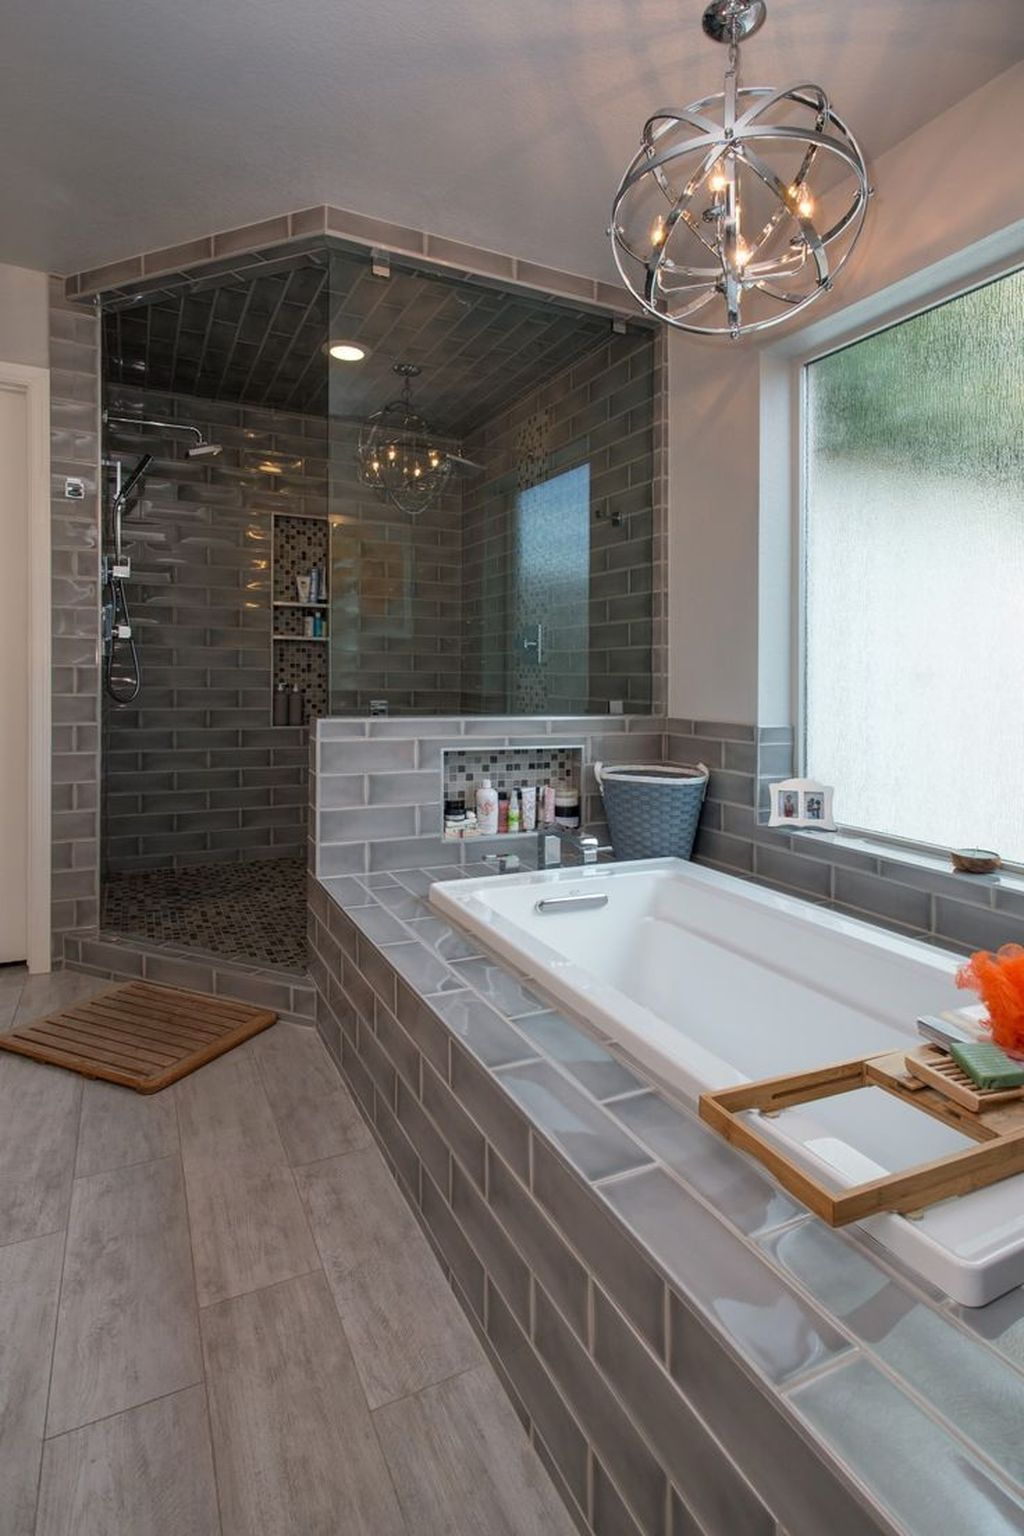 Inspiring Unique Bathroom Ideas That You Should Try 07